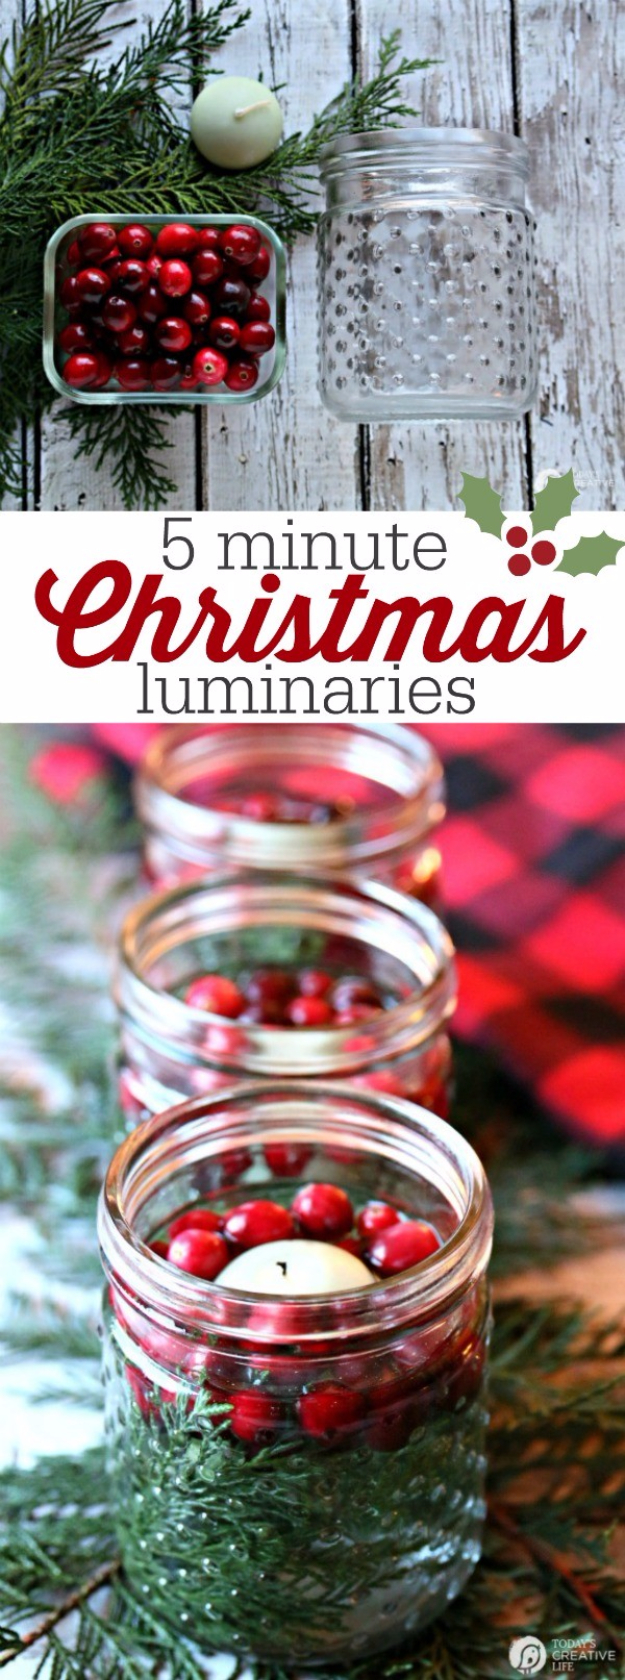 DIY Christmas Luminaries and Home Decor for The Holidays - 5 Minute Christmas Luminaries - Cool Candle Holders, Tea Lights, Holiday Gift Ideas, Christmas Crafts for Kids #diy #luminaries #christmas